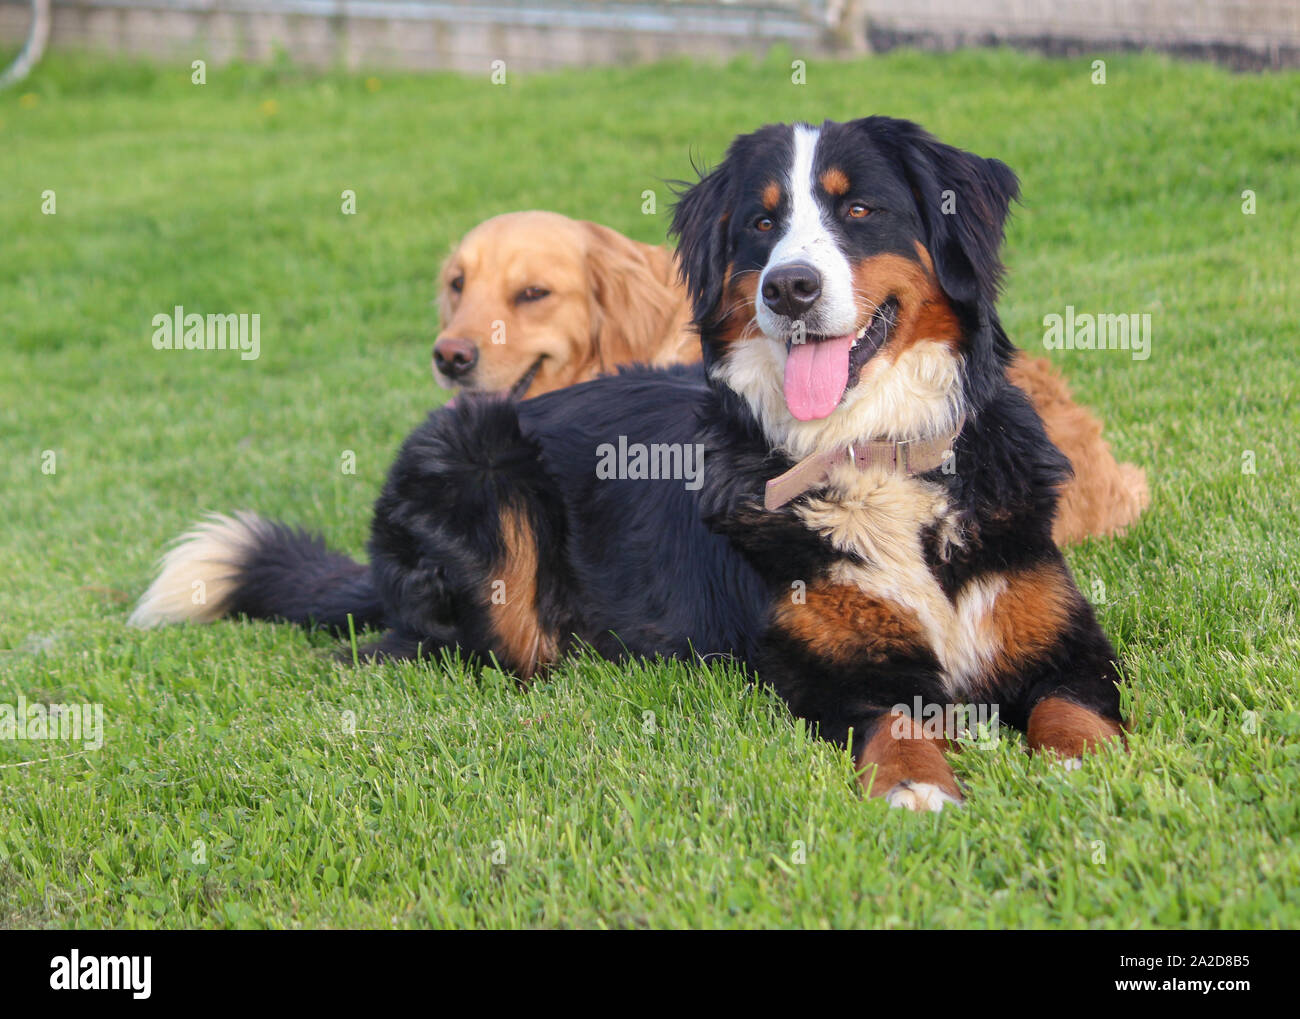 Bernese Mountain Dog With Golden Retriever In Background